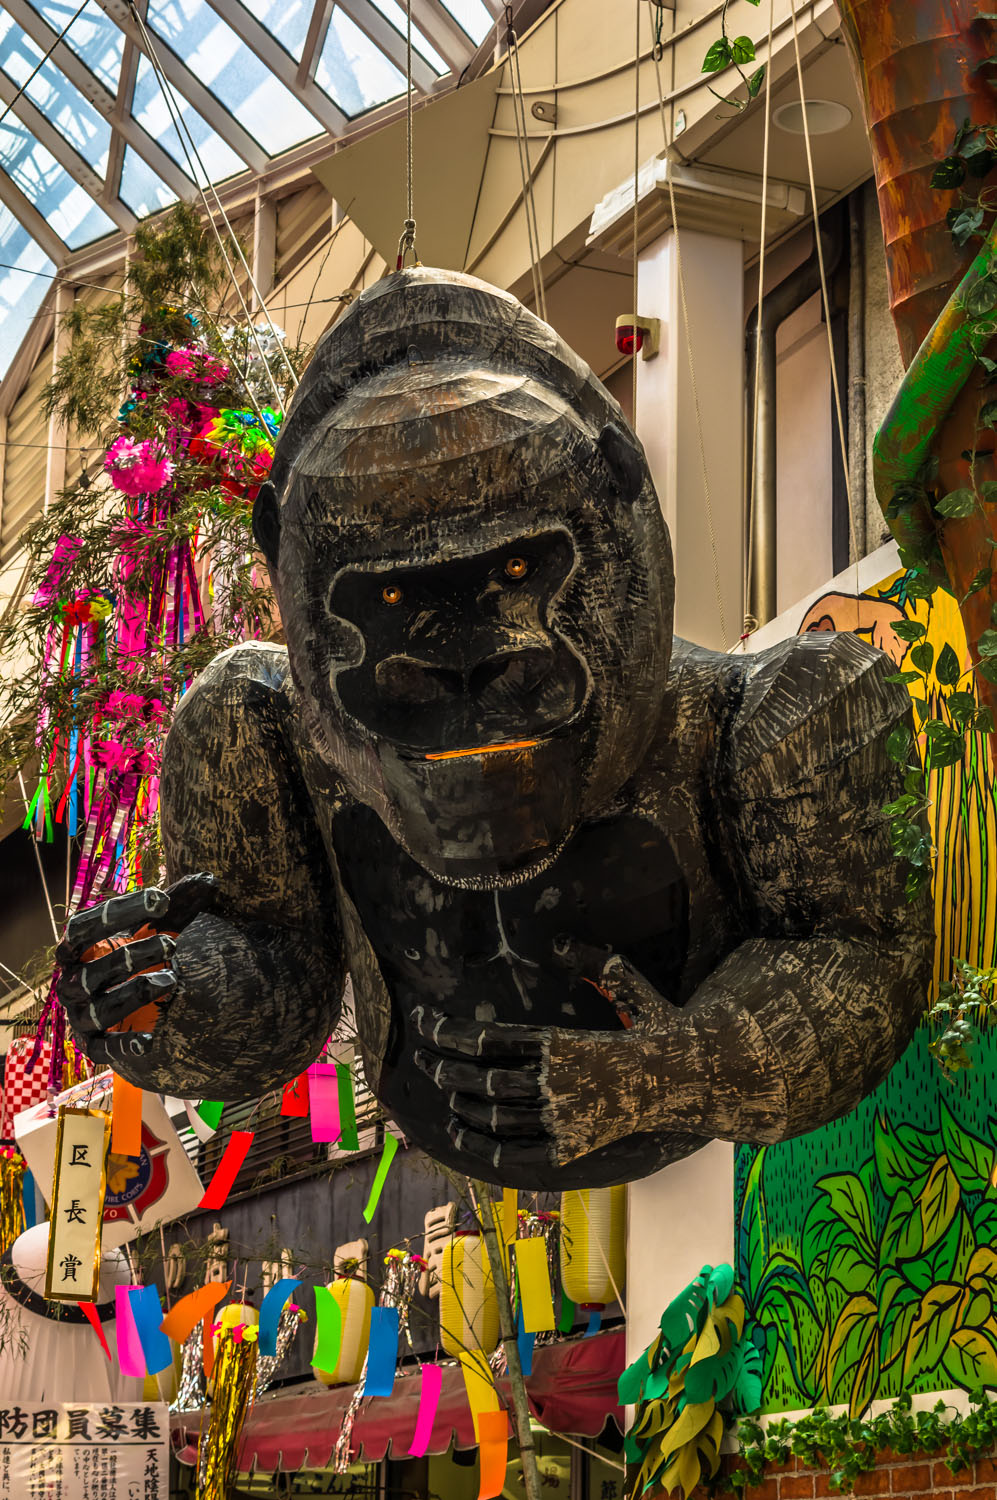 King Kong in Japan?